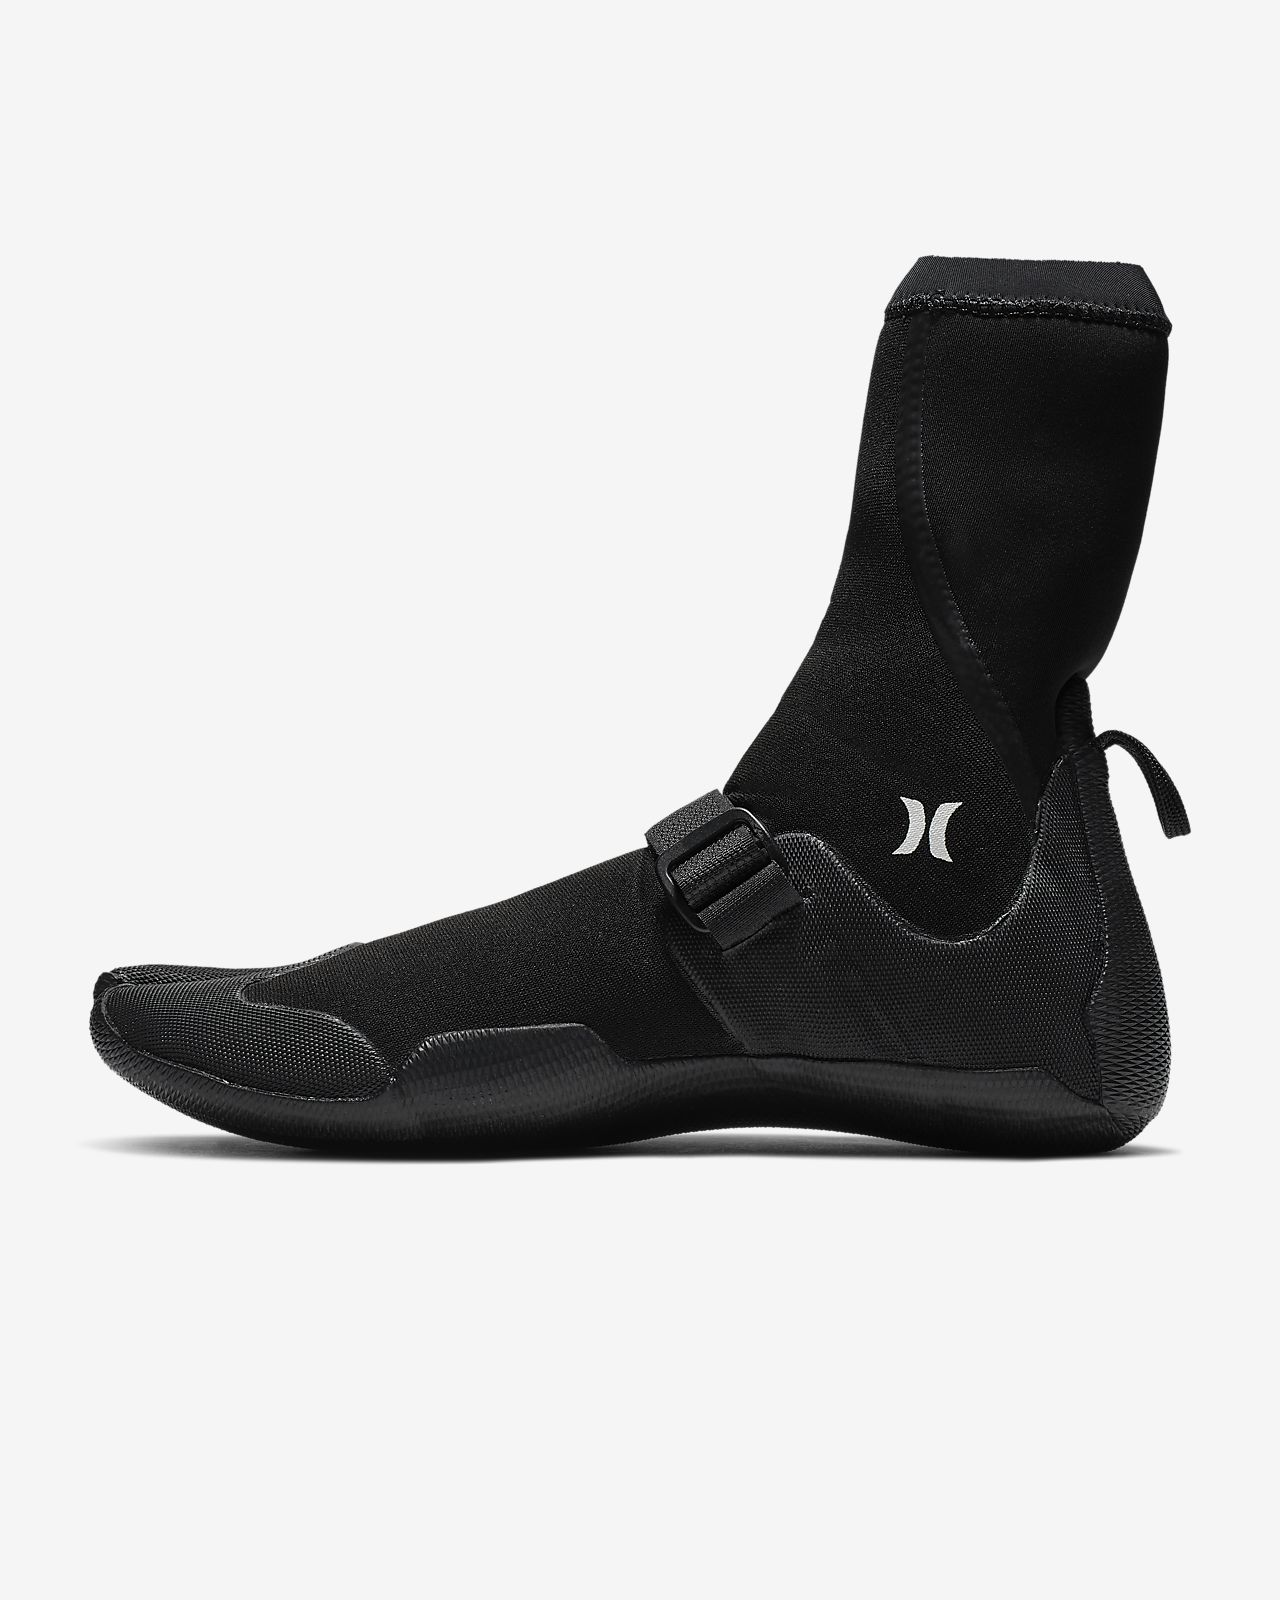 Hurley Advantage Plus 3/2mm Wetsuitboots voor heren